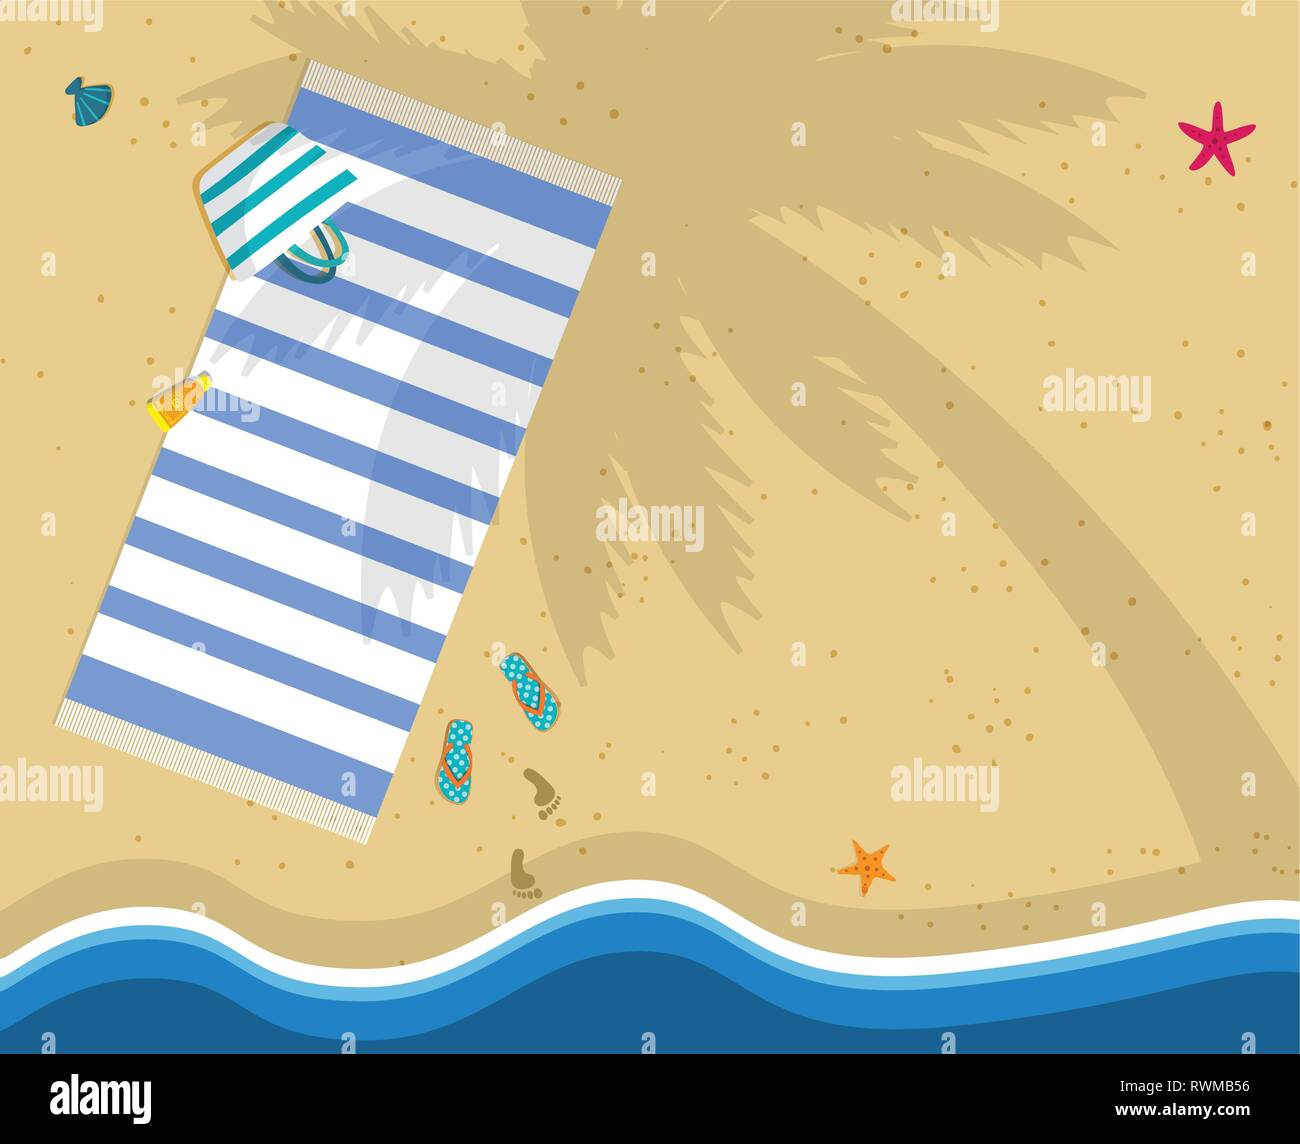 Summer Time Background with Copy Space. Top View of Sea Beach with Towel, Bag, Flip Flops and Footprints on Sand. Palm Tree Shadow on Seaside. Seashel - Stock Vector